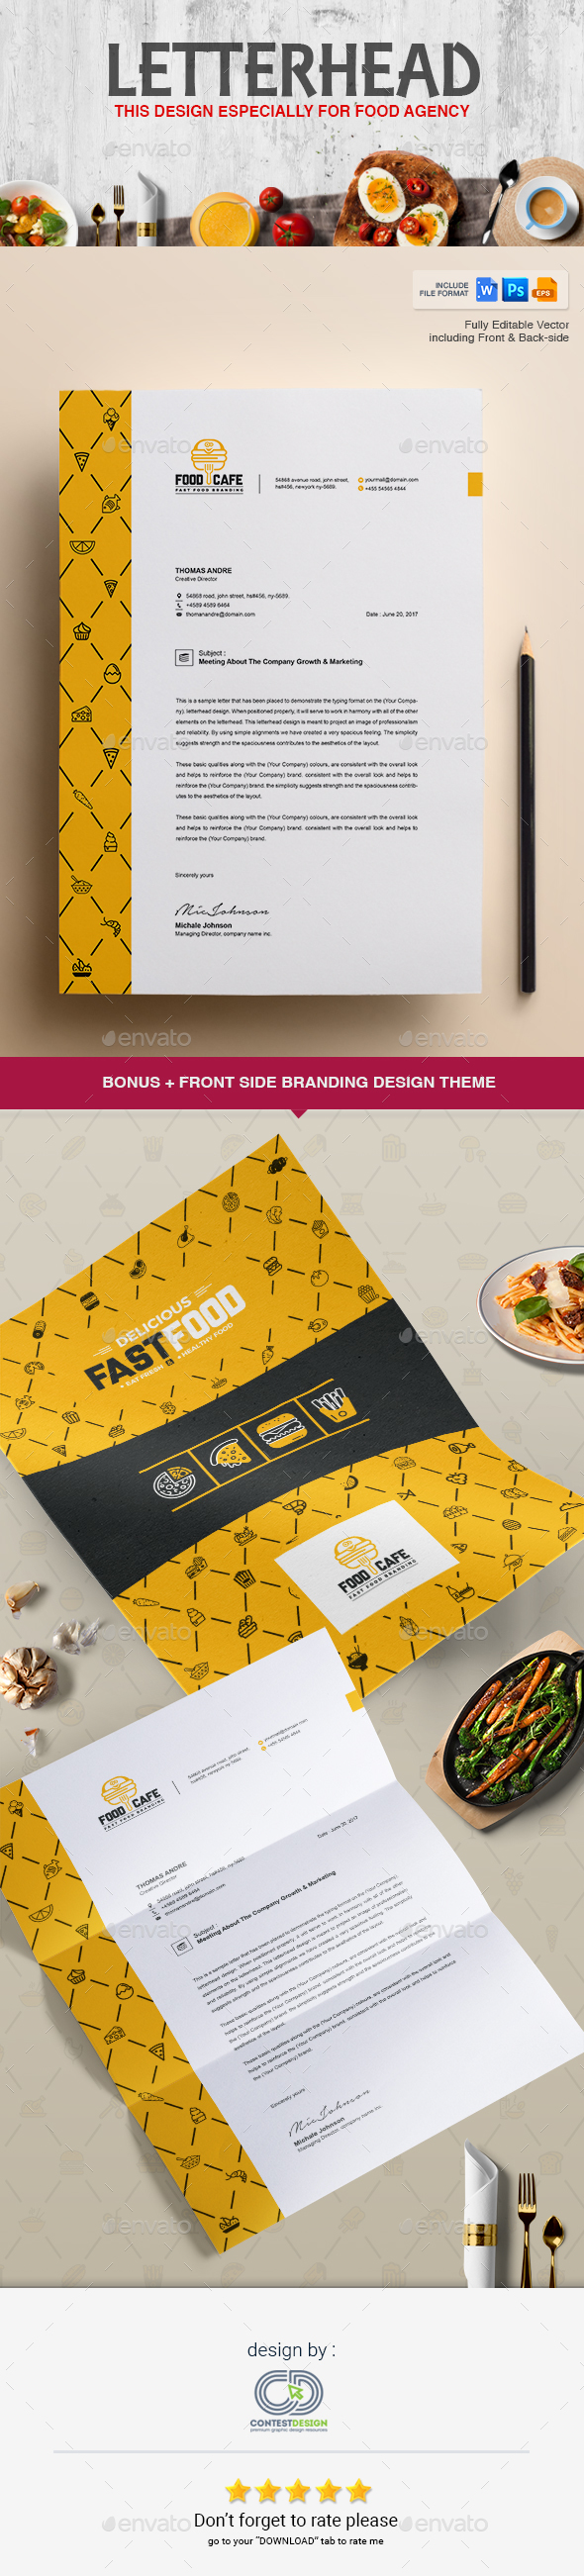 Letterhead Design Template for Fast Food / Restaurants / Cafe - Proposals & Invoices Stationery